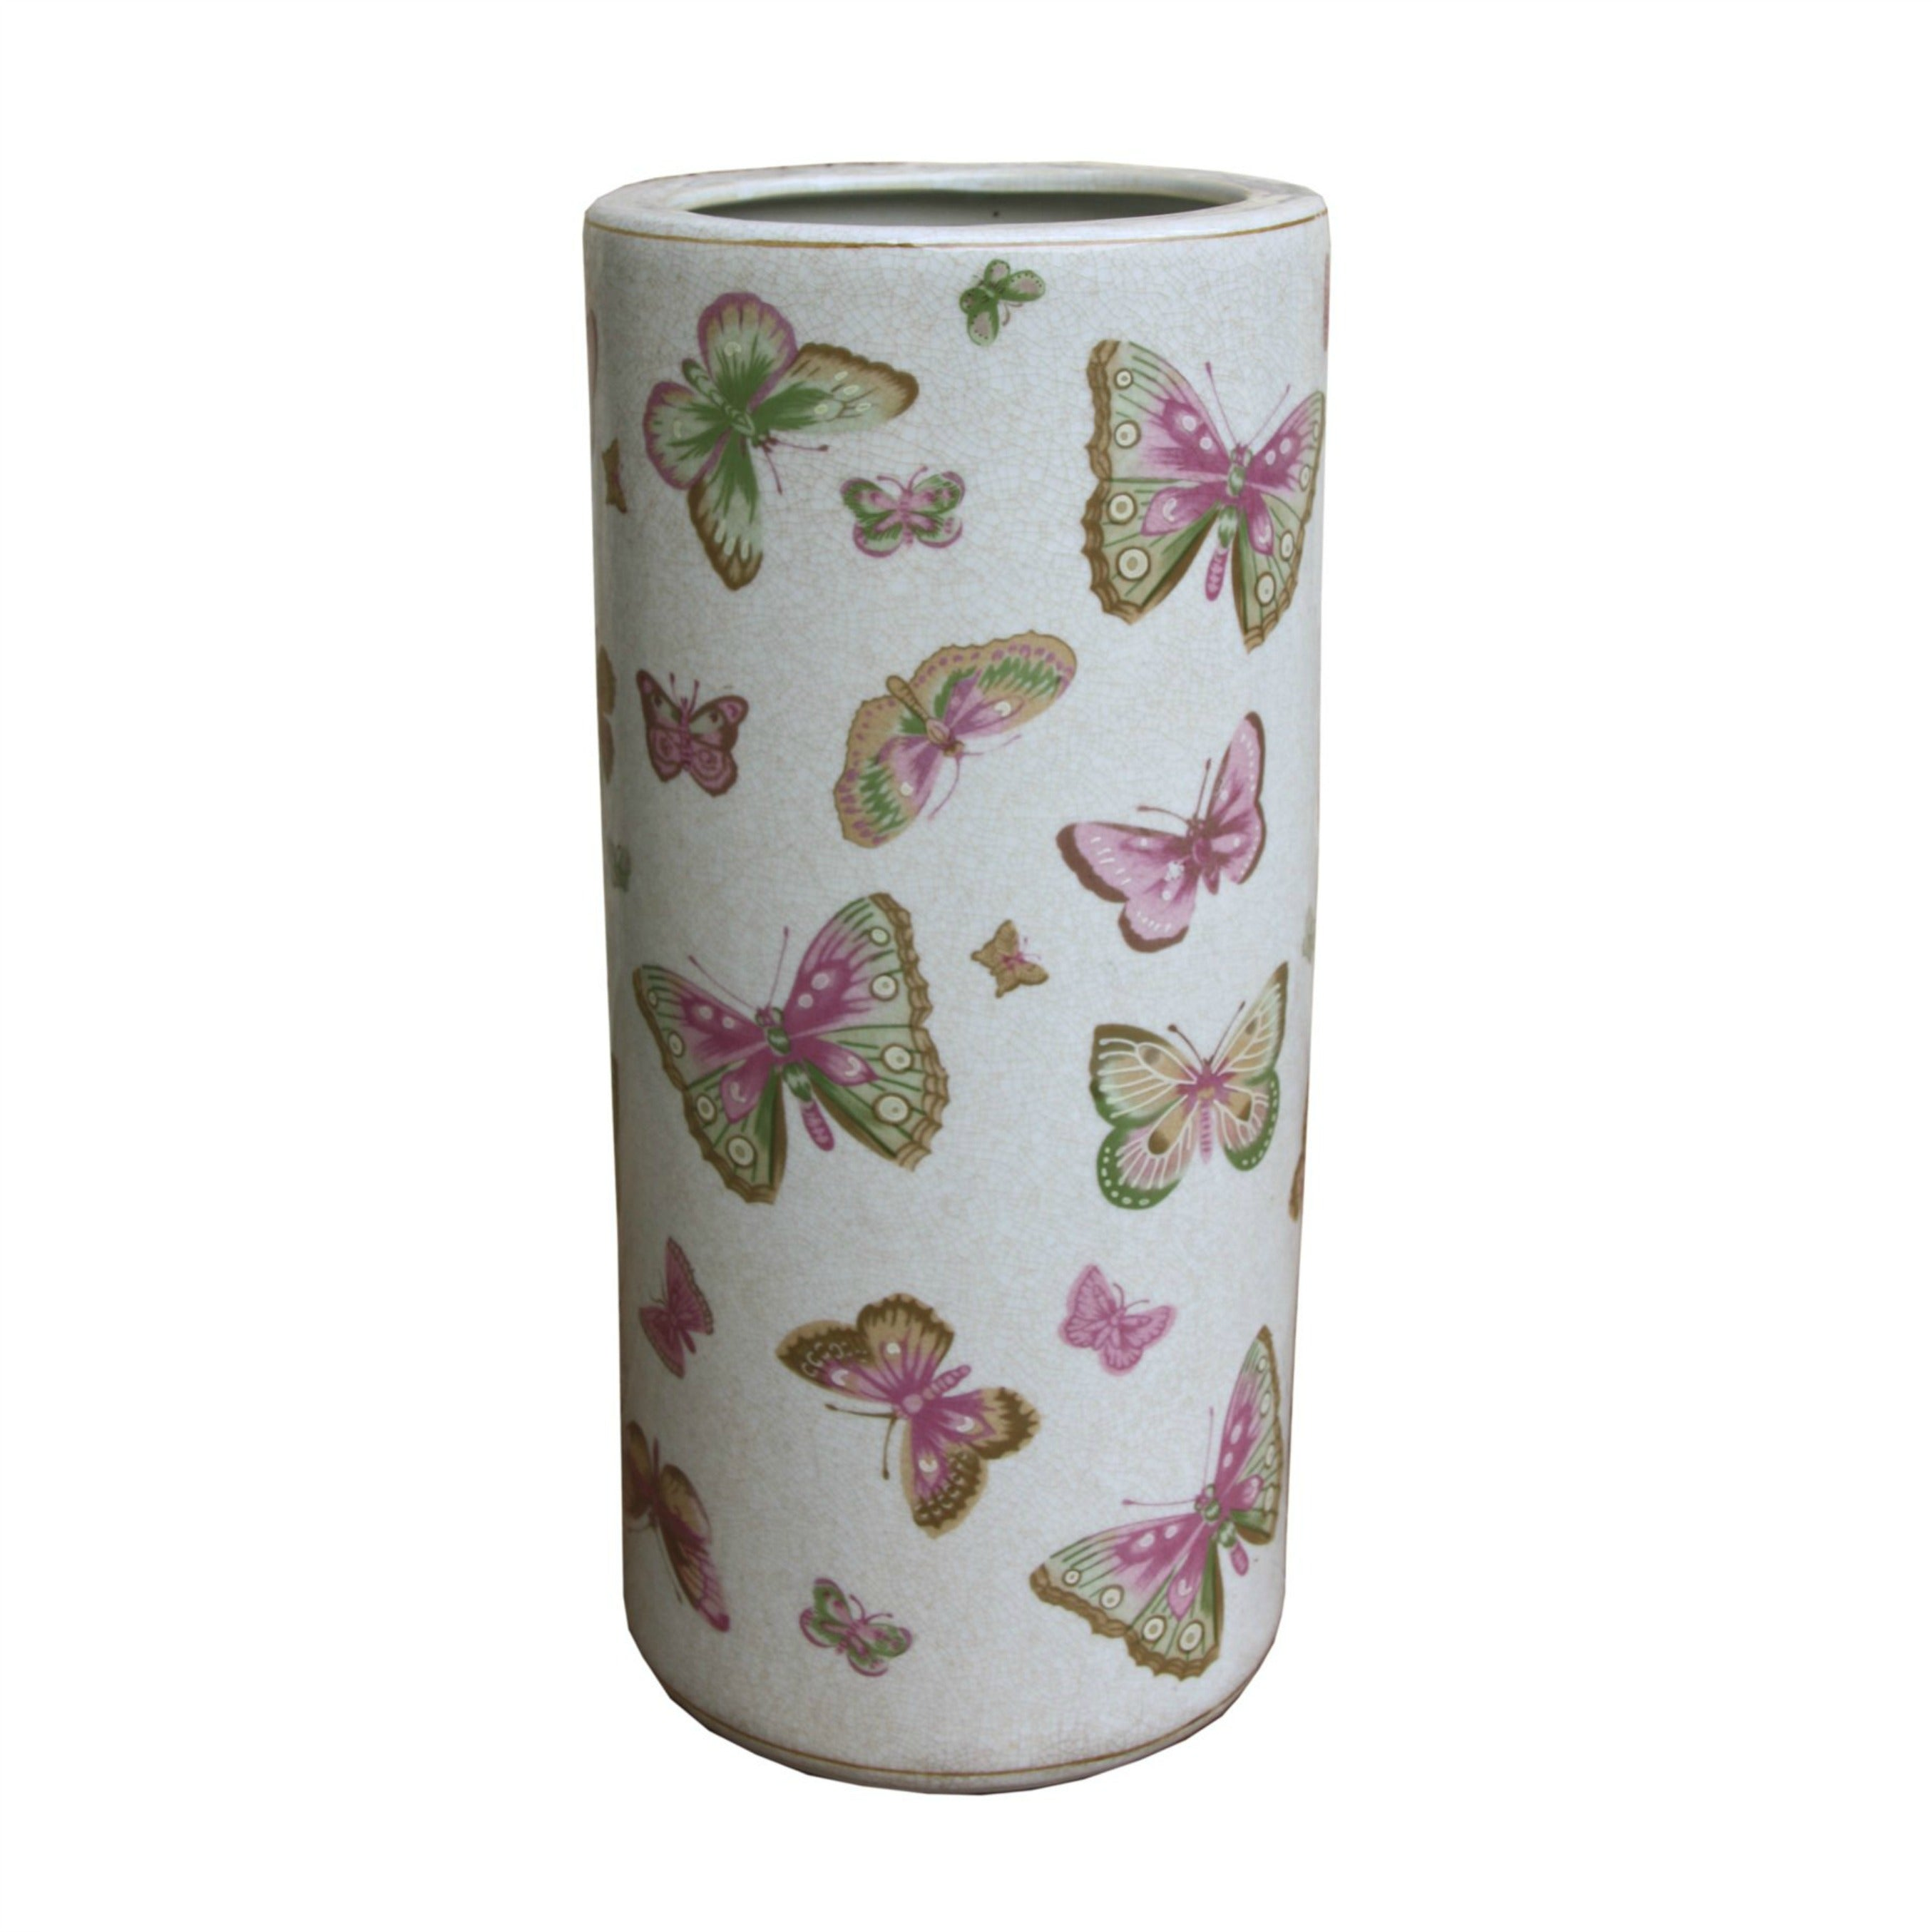 Ceramic Umbrella Stand, Butterfly Design, Parasols & Rain Umbrellas by Low Cost Gifts